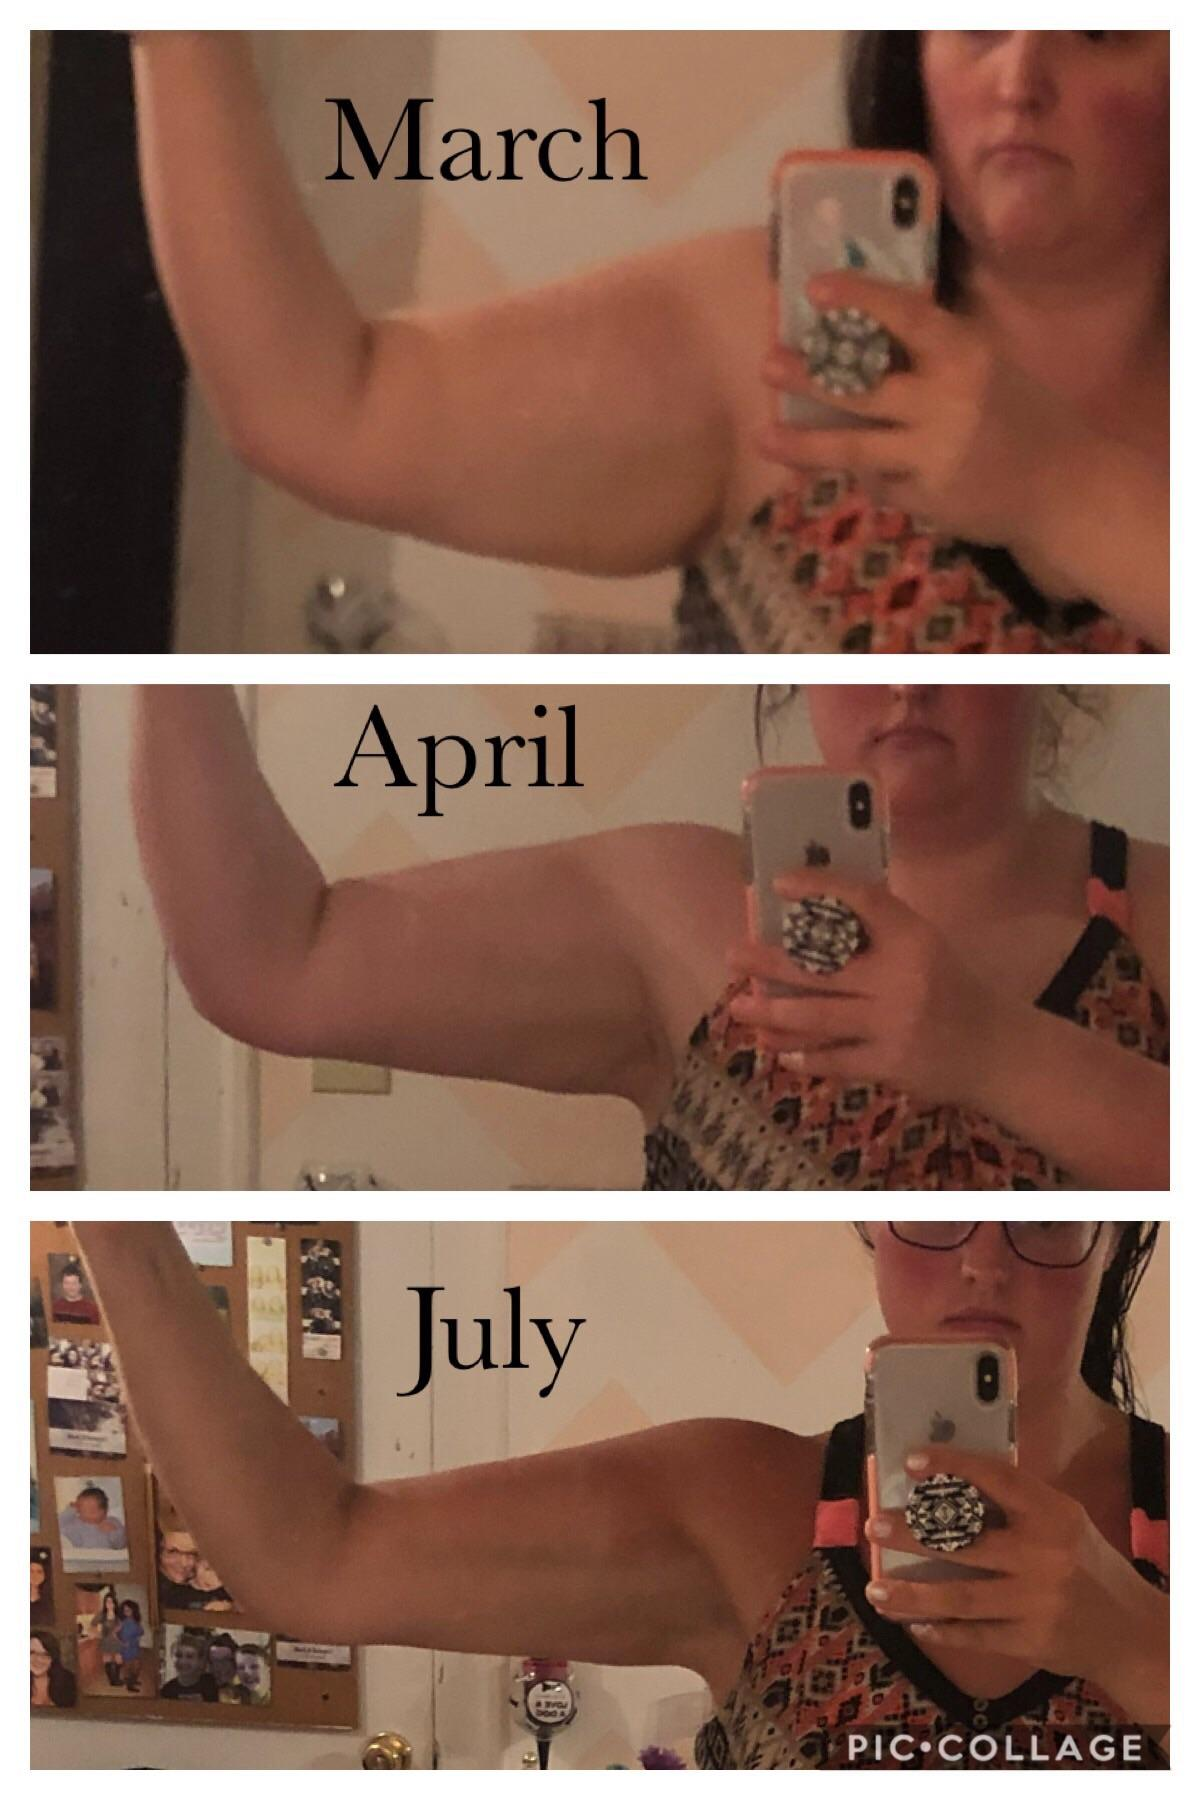 5 feet 8 Female Before and After 102 lbs Weight Loss 290 lbs to 188 lbs